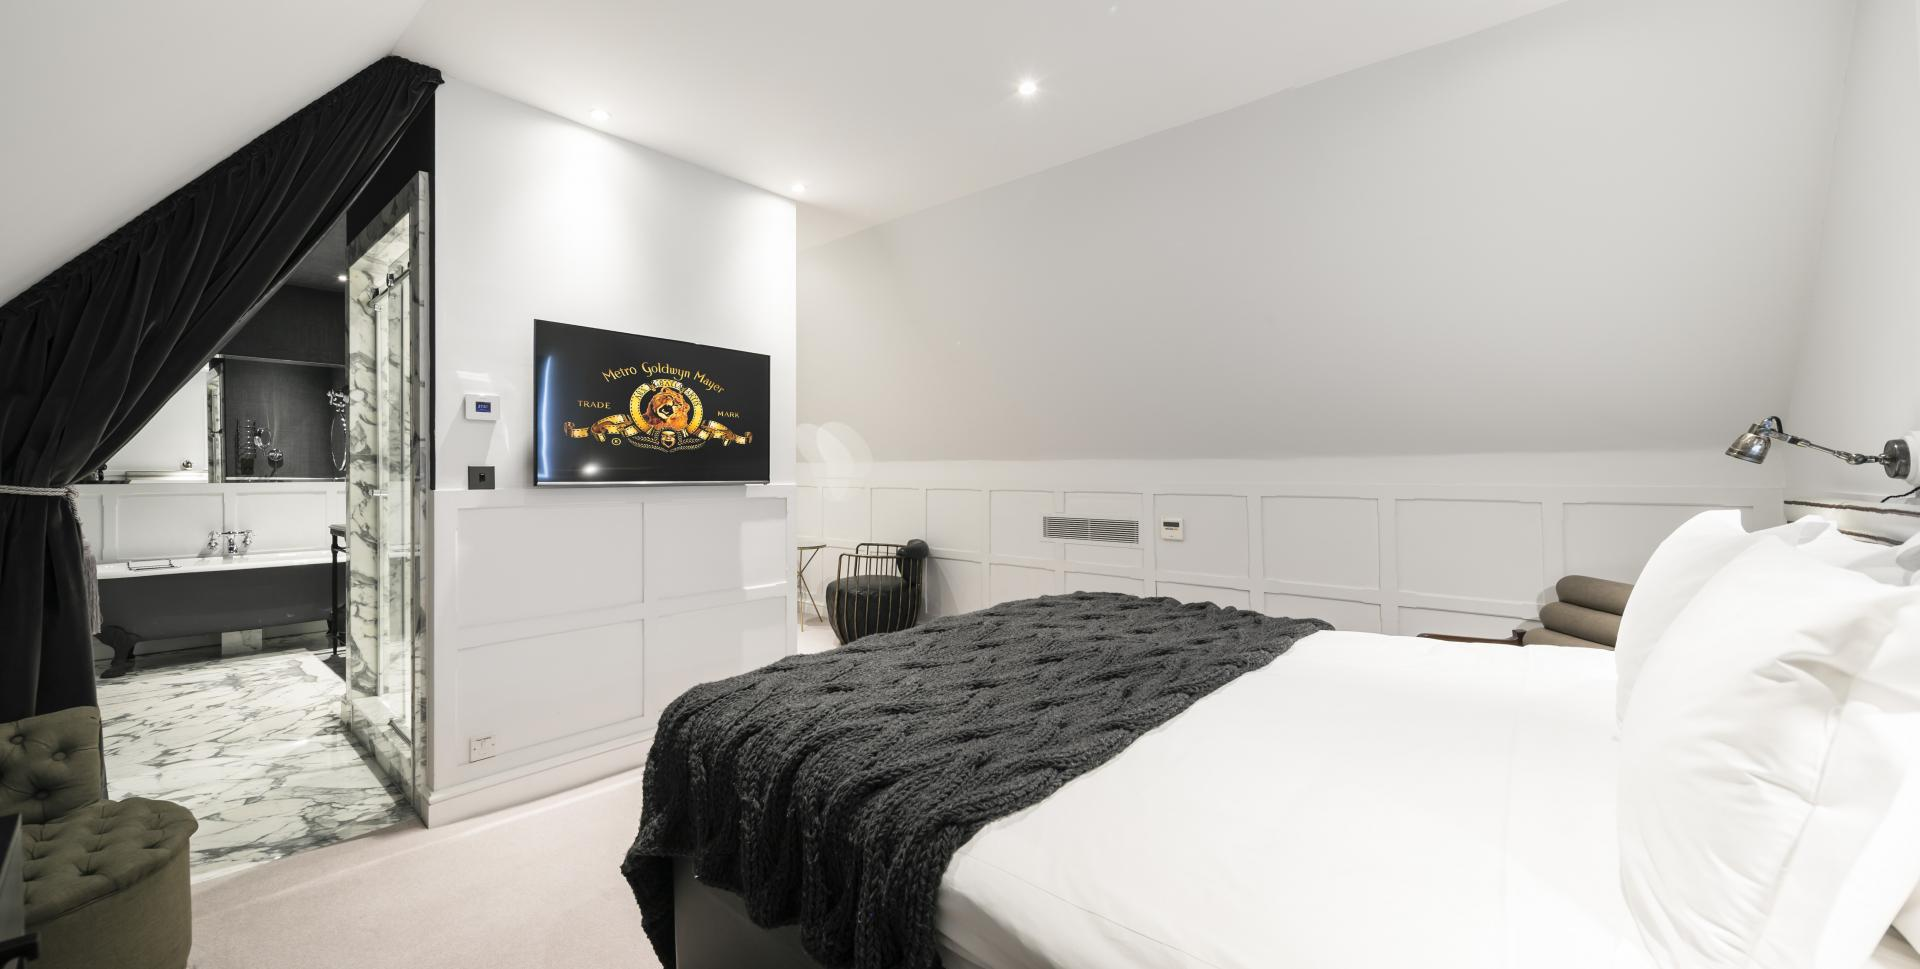 Tv in bedroom at Luxurious Mayfair Apartments, Mayfair, London